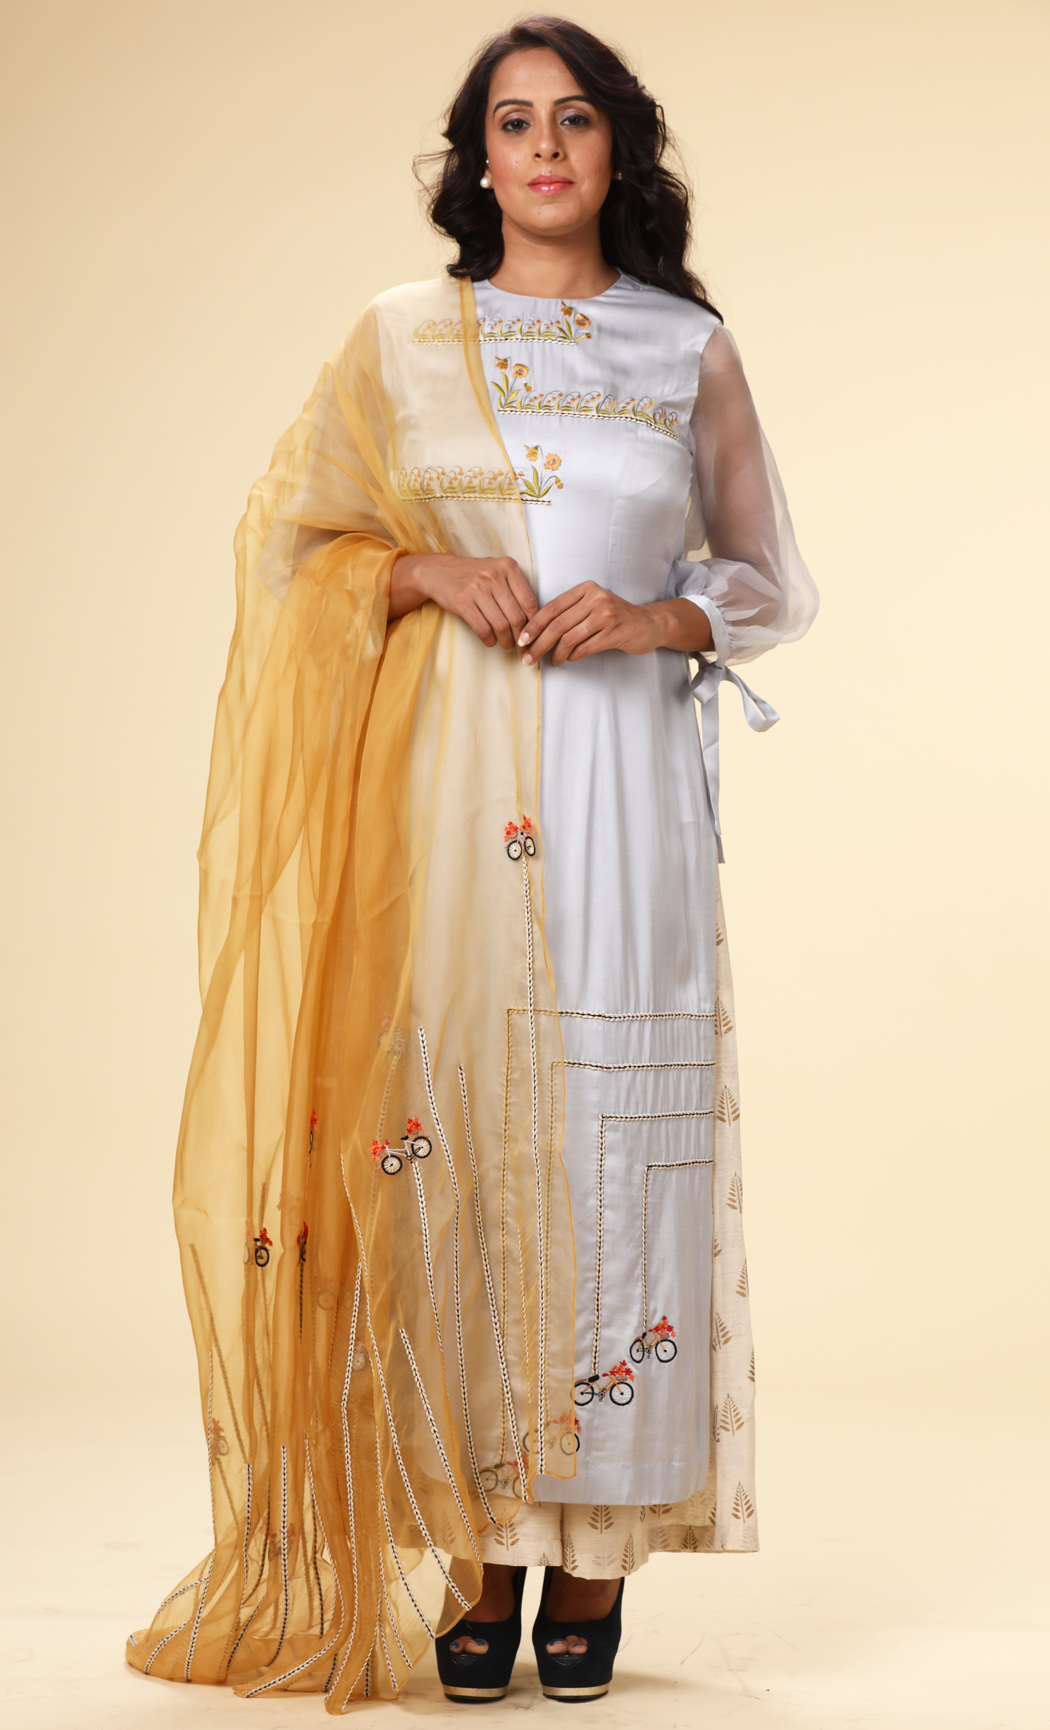 Powder Blue Embroidered Kurta with a Mustard Dupatta and Pants - Buy Online